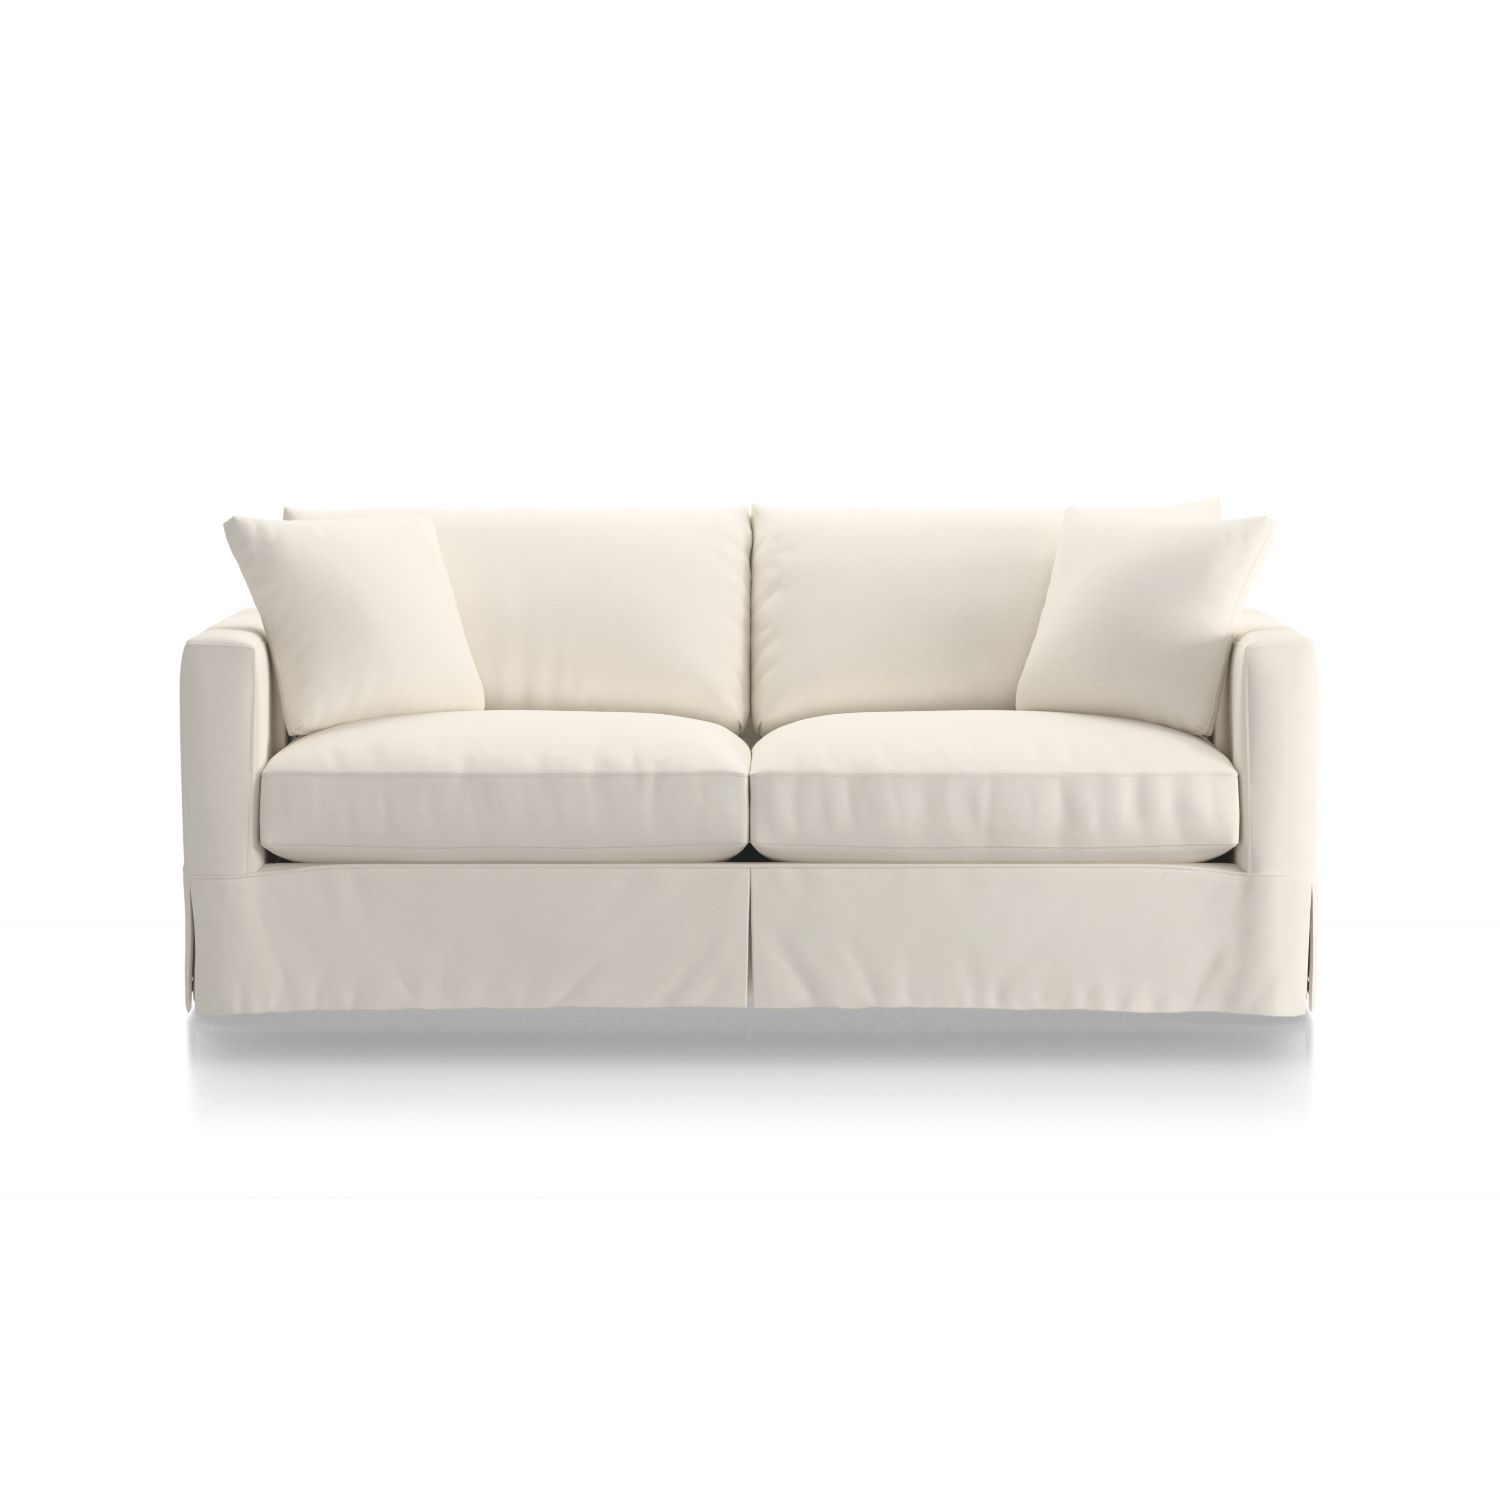 Willow Modern Slipcovered Sofa The Periwinkle Pad Sofa